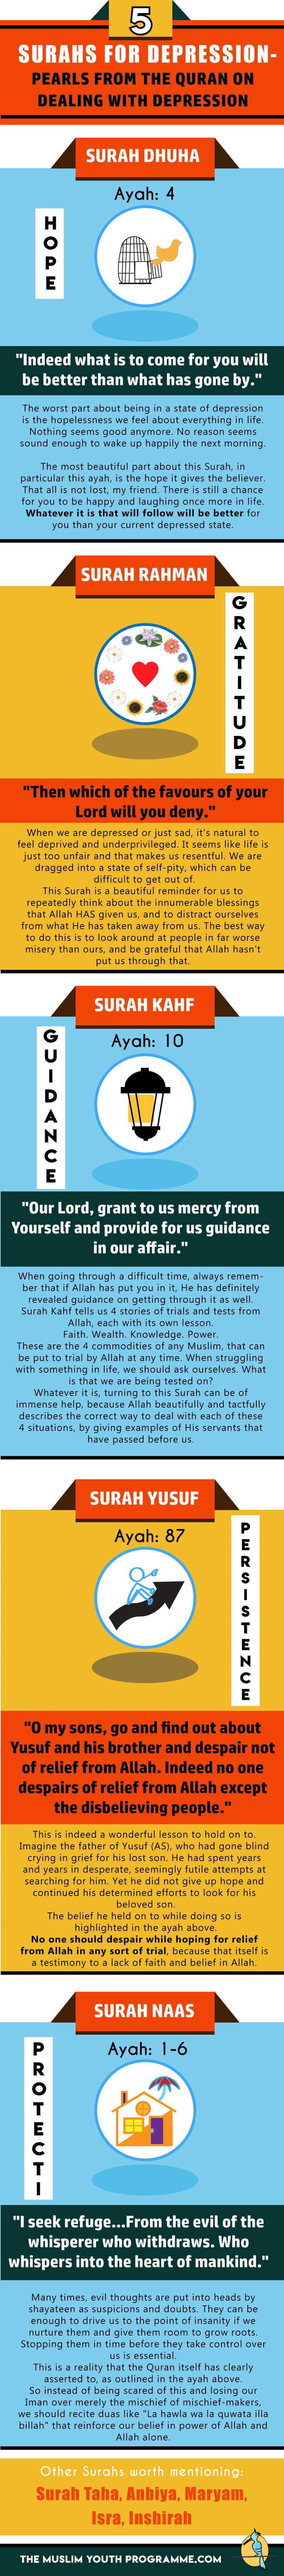 5 Surahs for Depression- Pearls From The Quran on Dealing with Depression..Instead of giving you a list of Surahs for depression, I decided to extract the nectar of these surahs, with specific ayahs that you can replay in your mind and on your tongue to destroy the nemesis of depression.